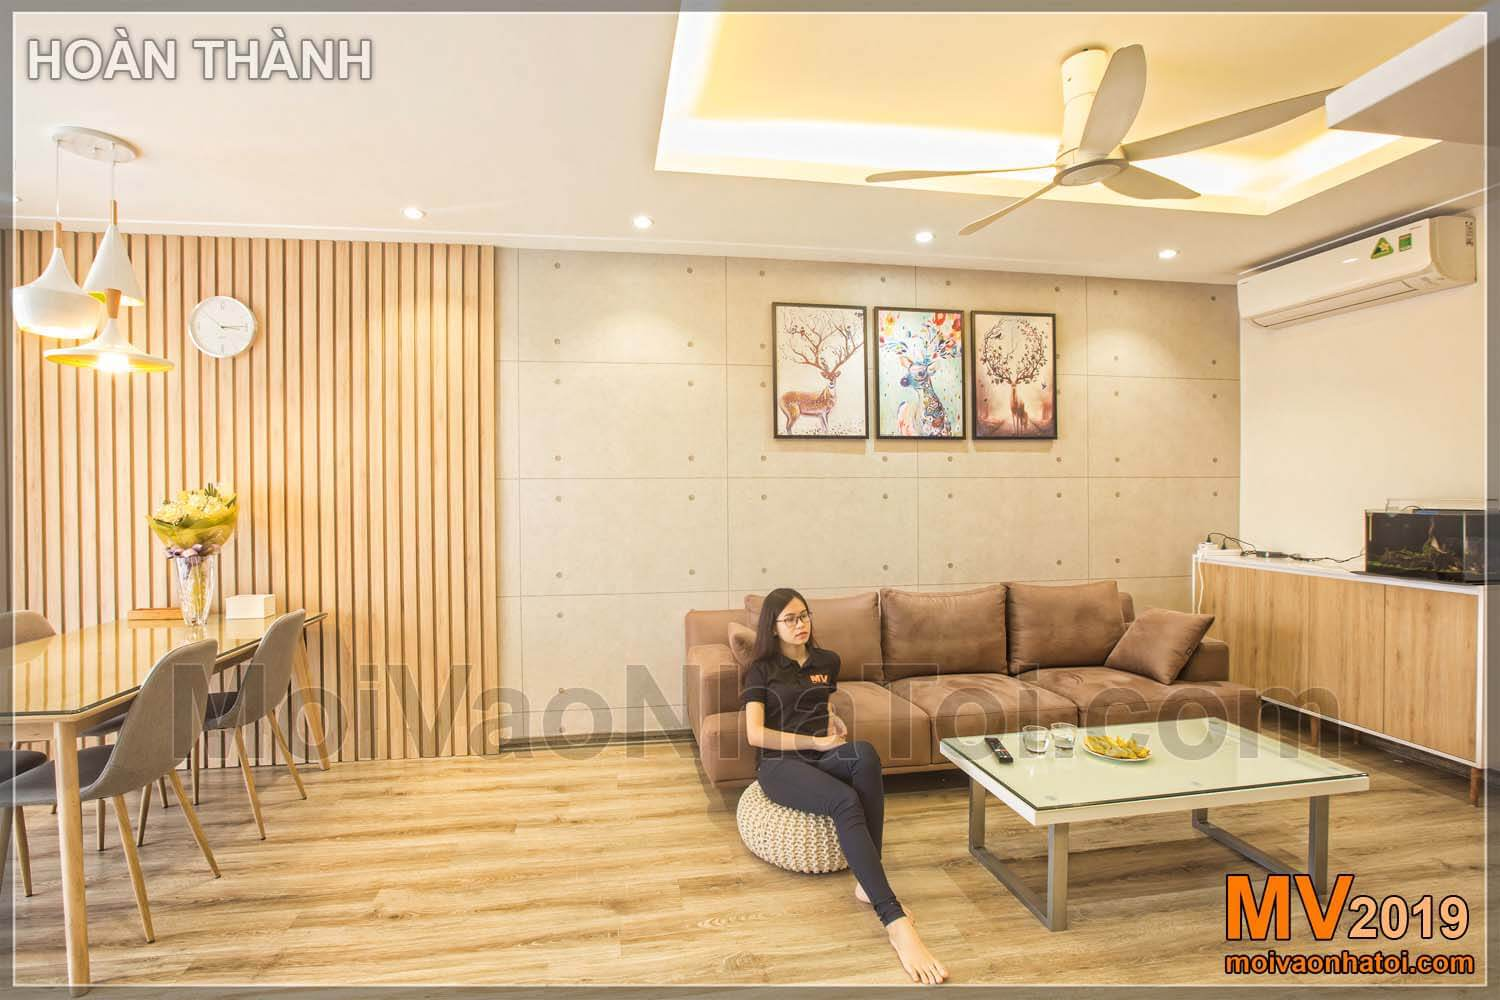 Interior design and construction of Northern Diamond Long Bien apartment building 110m2